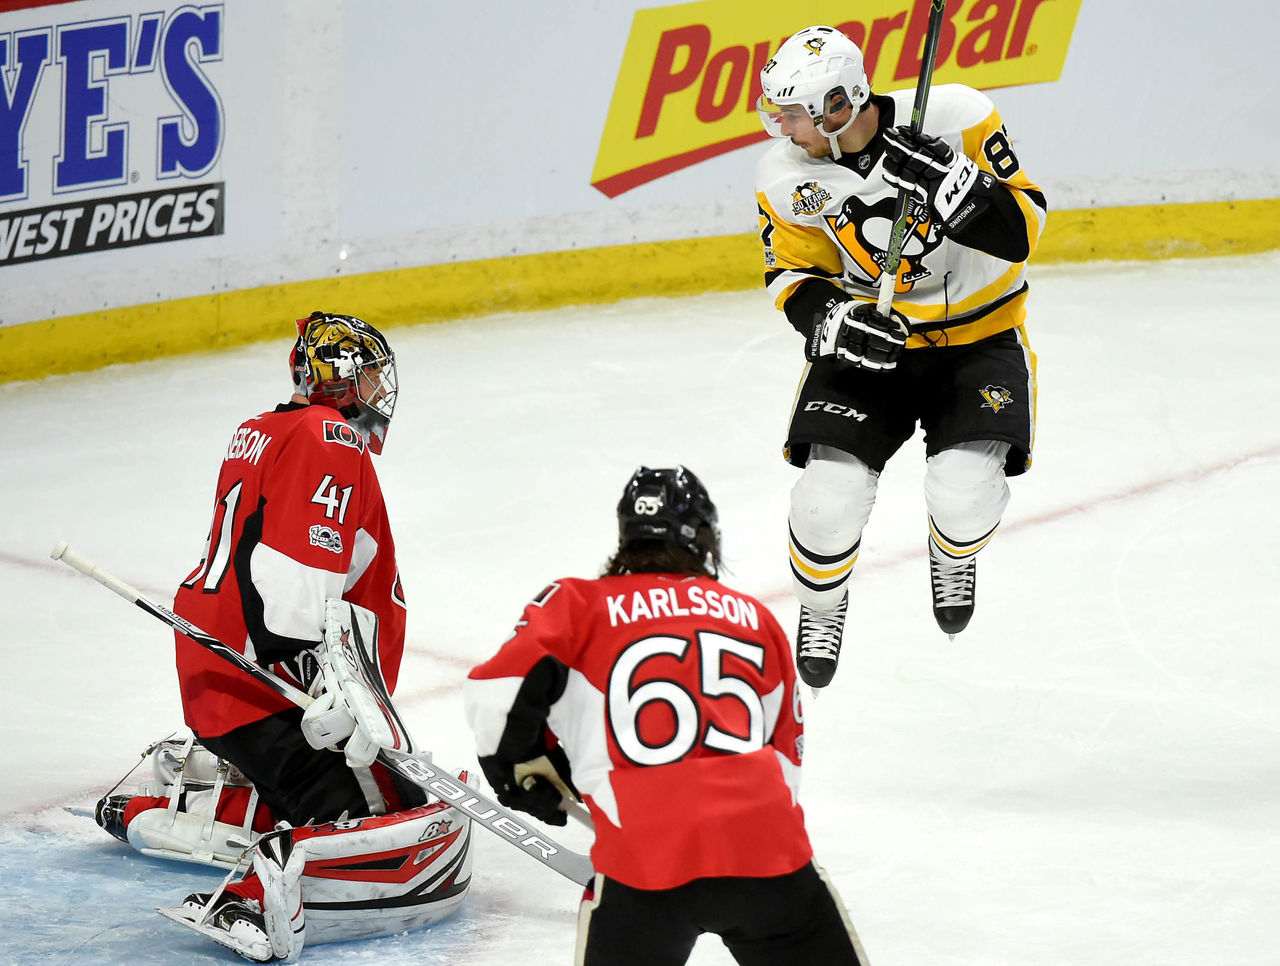 Cropped 2017 05 18t033242z 1718523975 nocid rtrmadp 3 nhl stanley cup playoffs pittsburgh penguins at ottawa senators